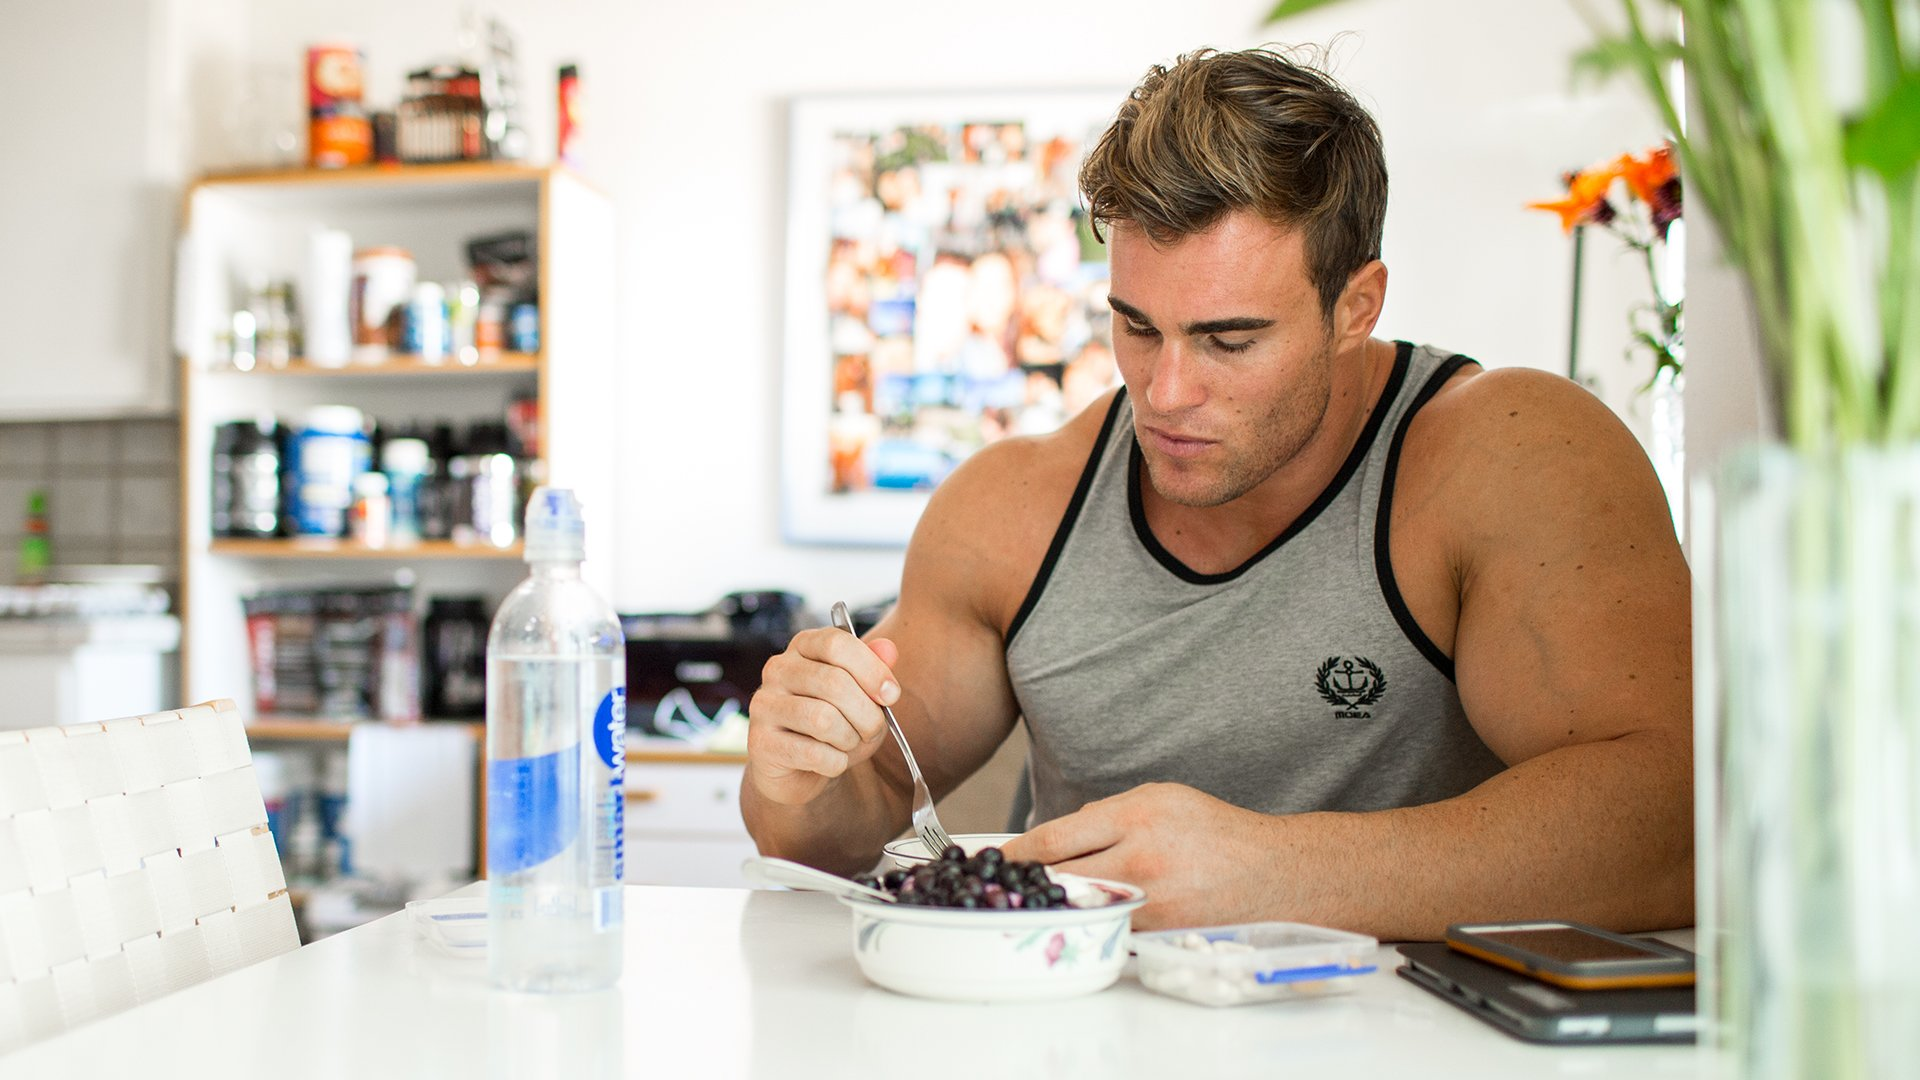 Best foods for muscle growth and weight loss